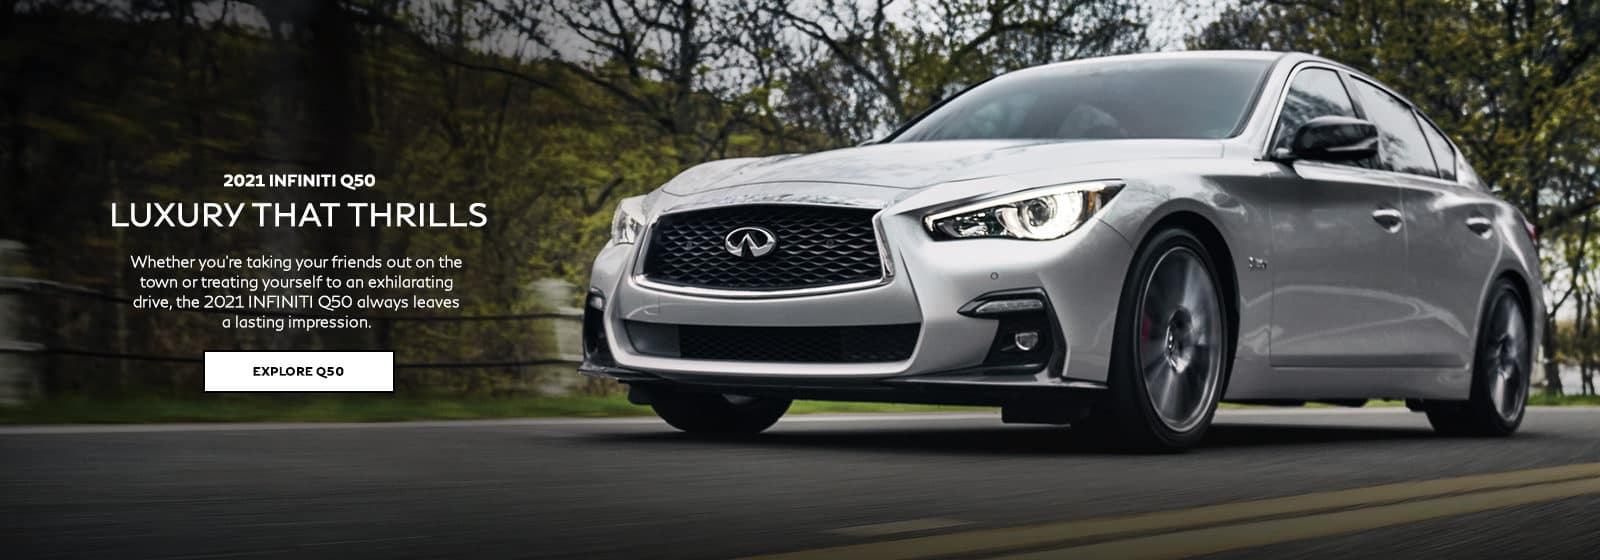 2021 INFINITI Q50 Luxury That Thrills. Whether you're taking your friends out on the town or treating yourself to an exhilarating drive, the 2021 INFINITI Q50 always leaves a lasting impression. Click to explore Q50.